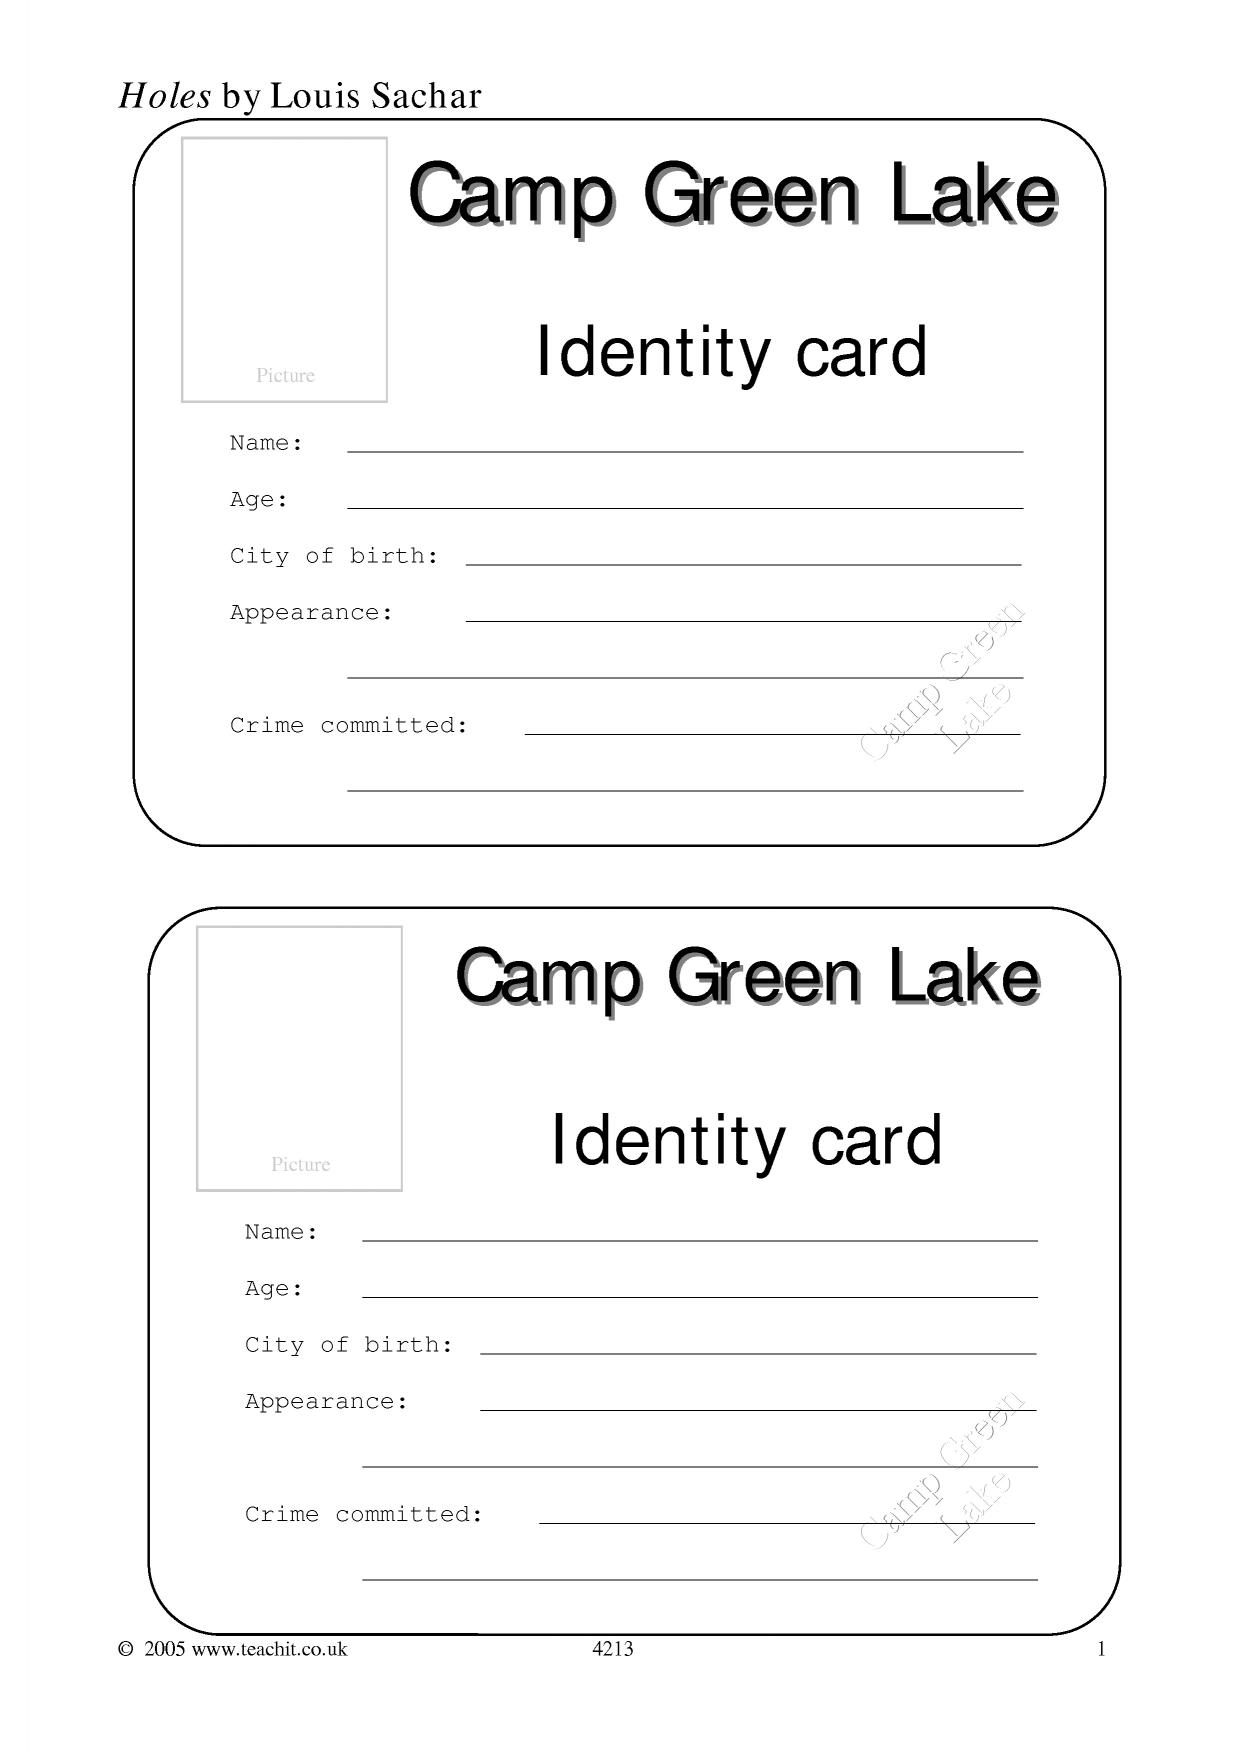 camp green lake id card holes by louis sachar home page resource thumbnail